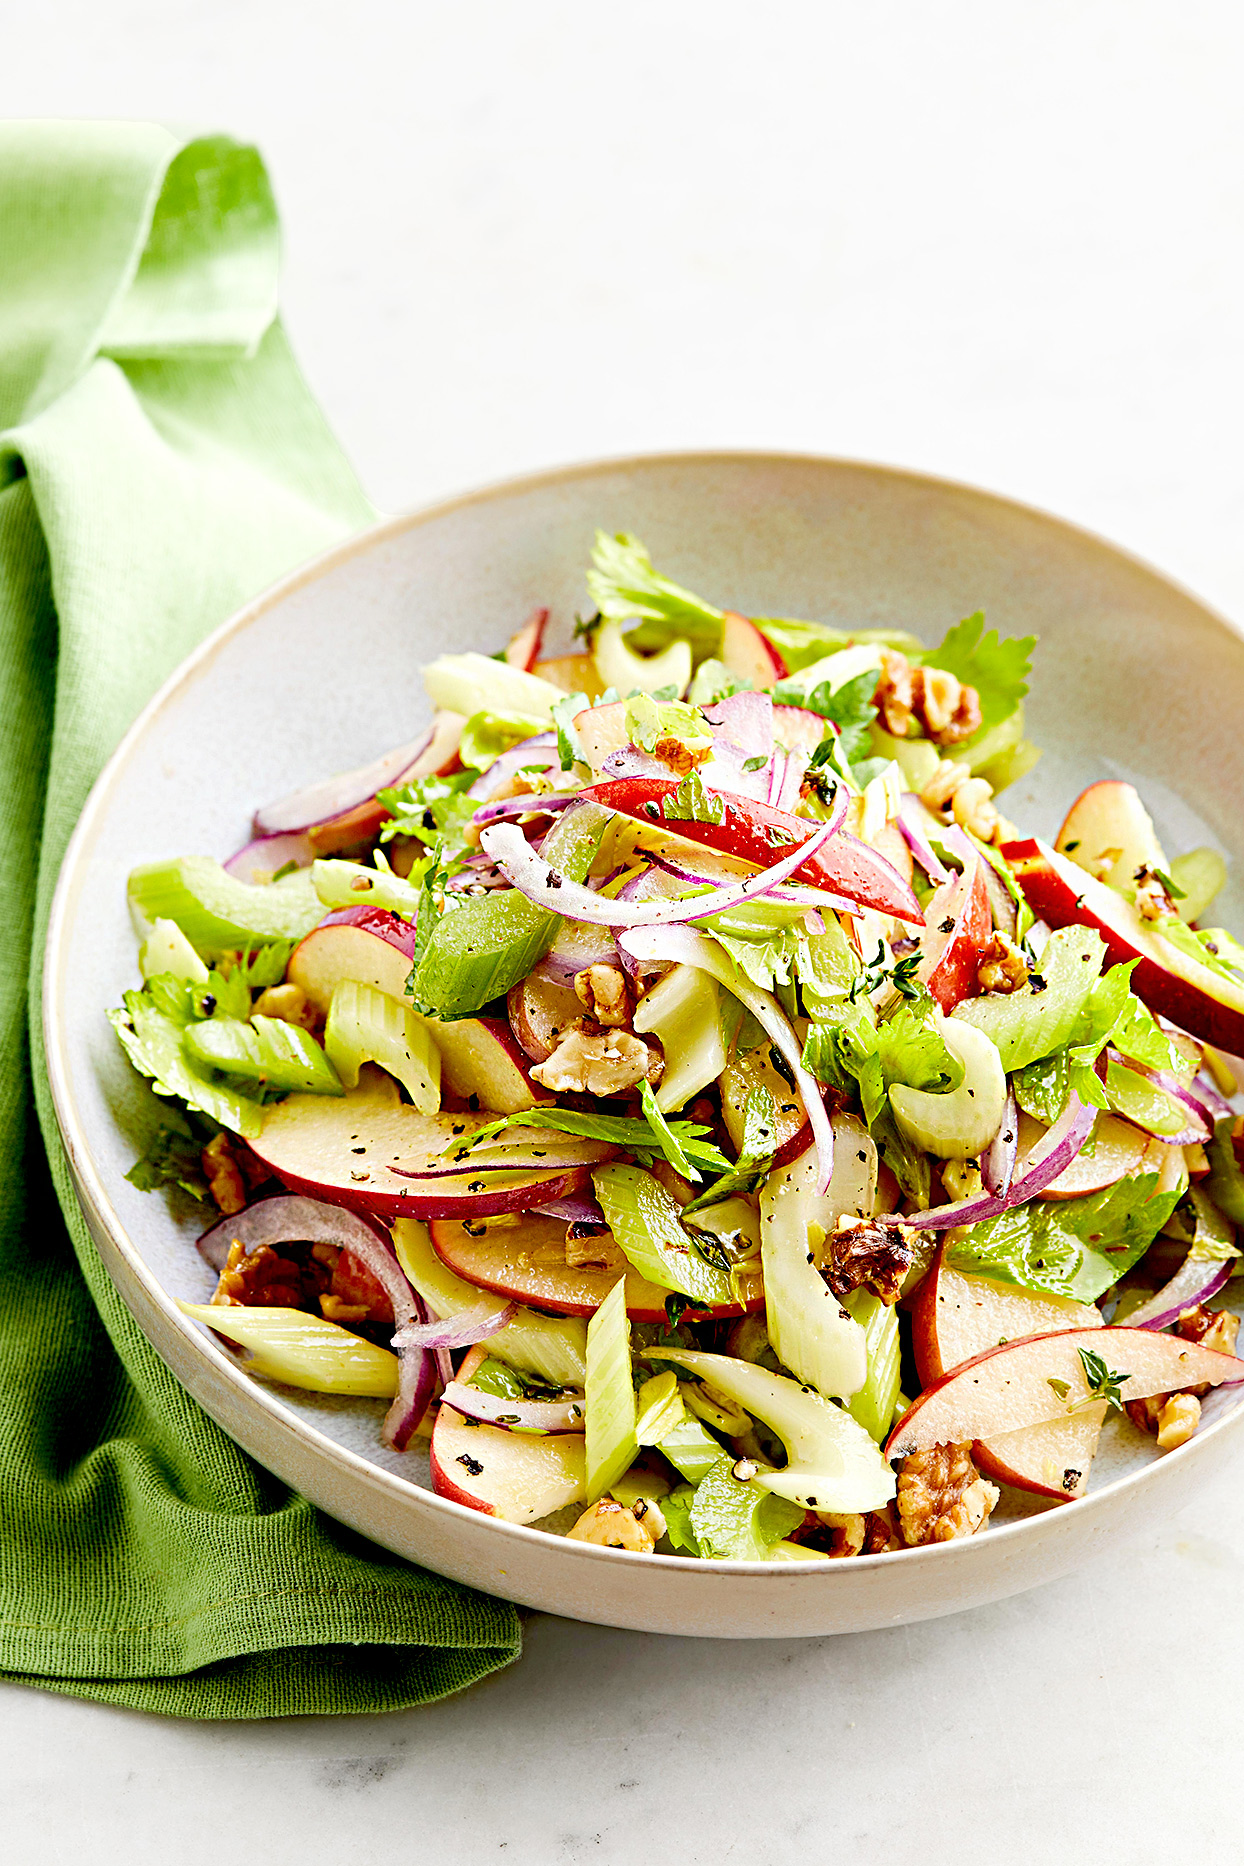 Overhead photo of bowl of celery and apple salad with walnuts